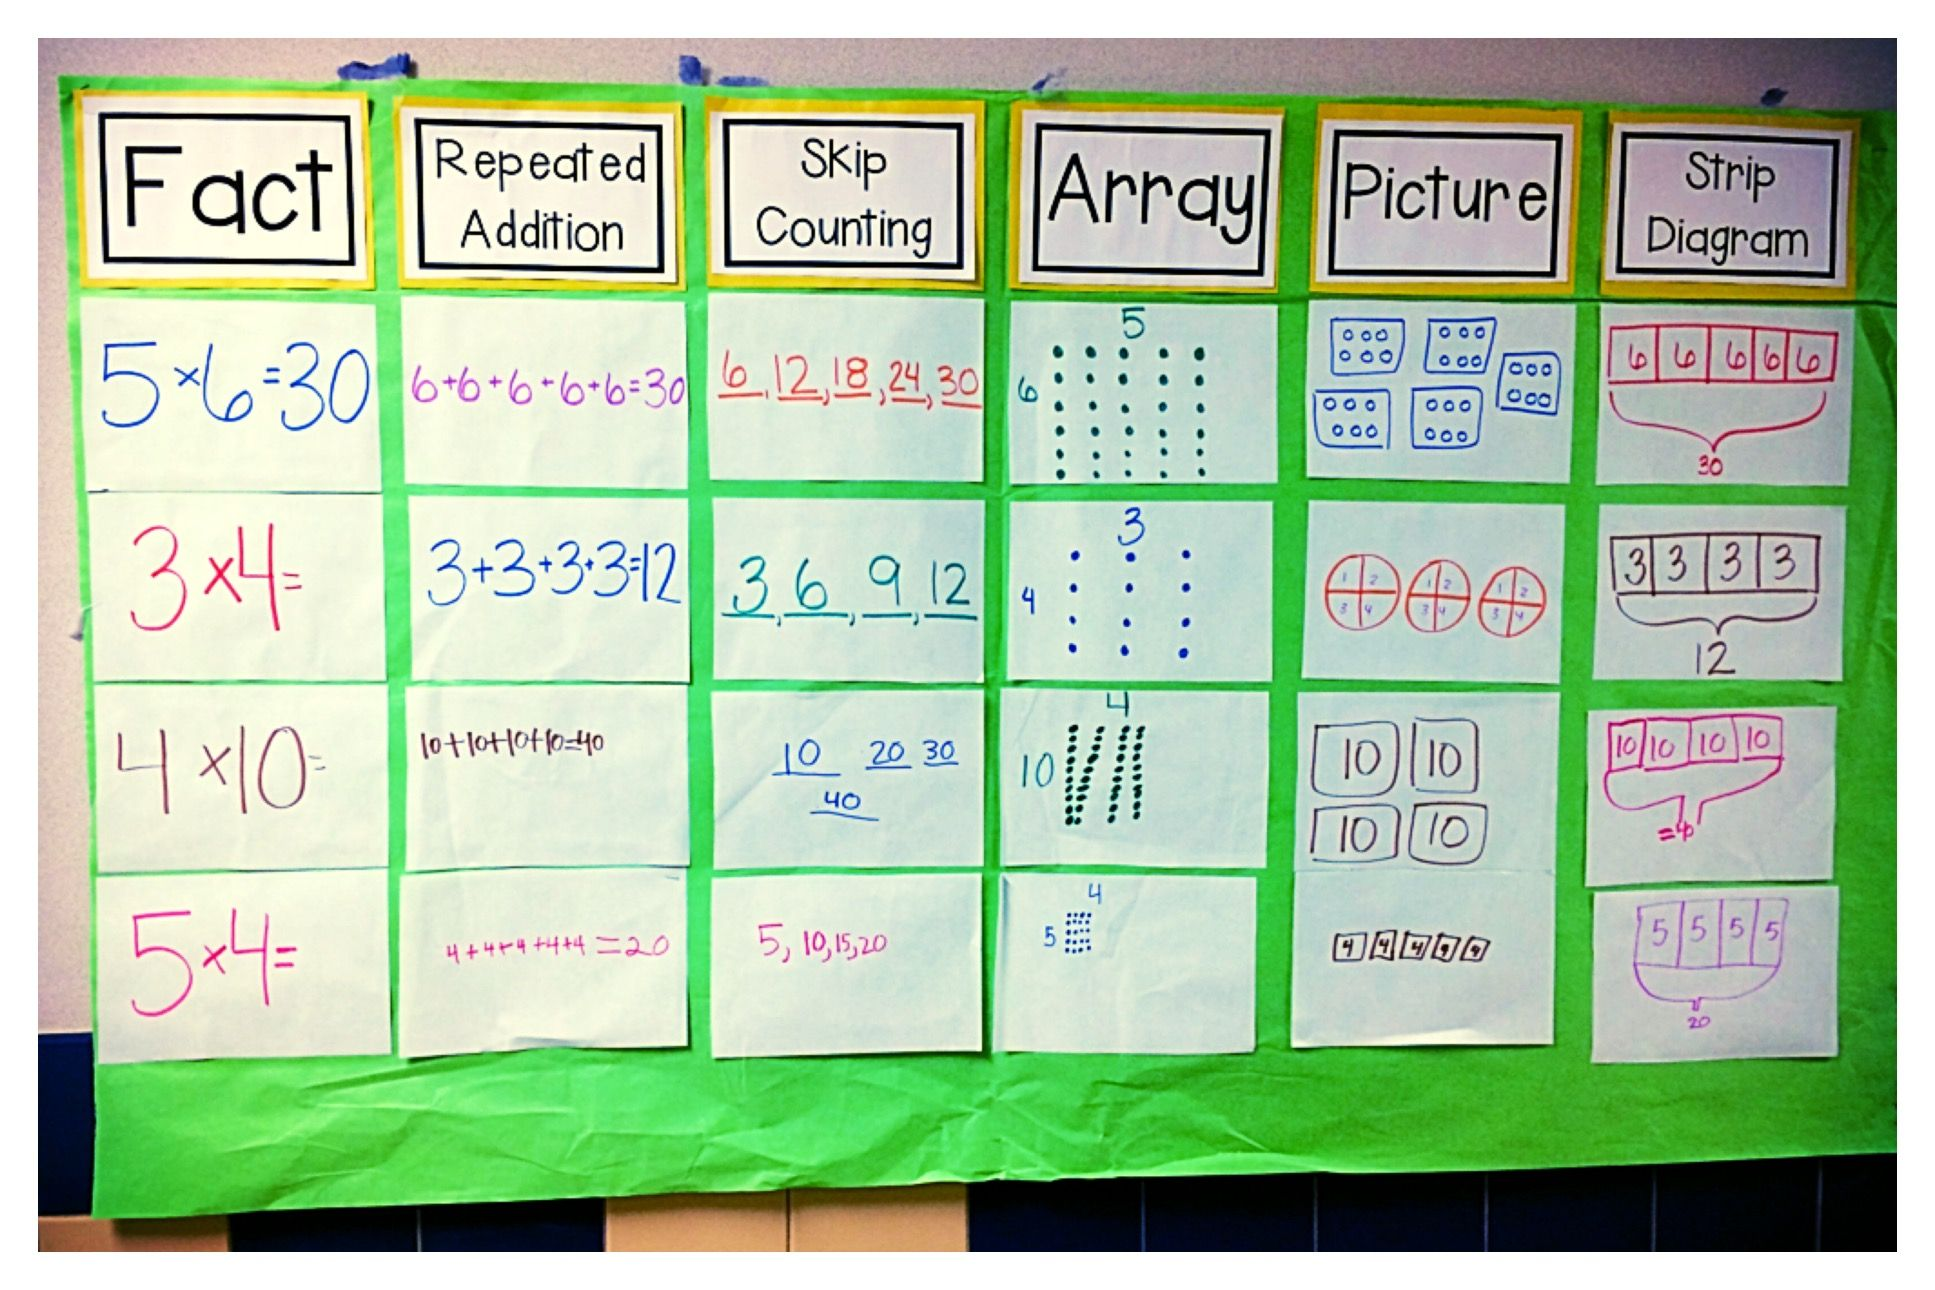 Fact  Array  Strip Diagram  All In One Board    With